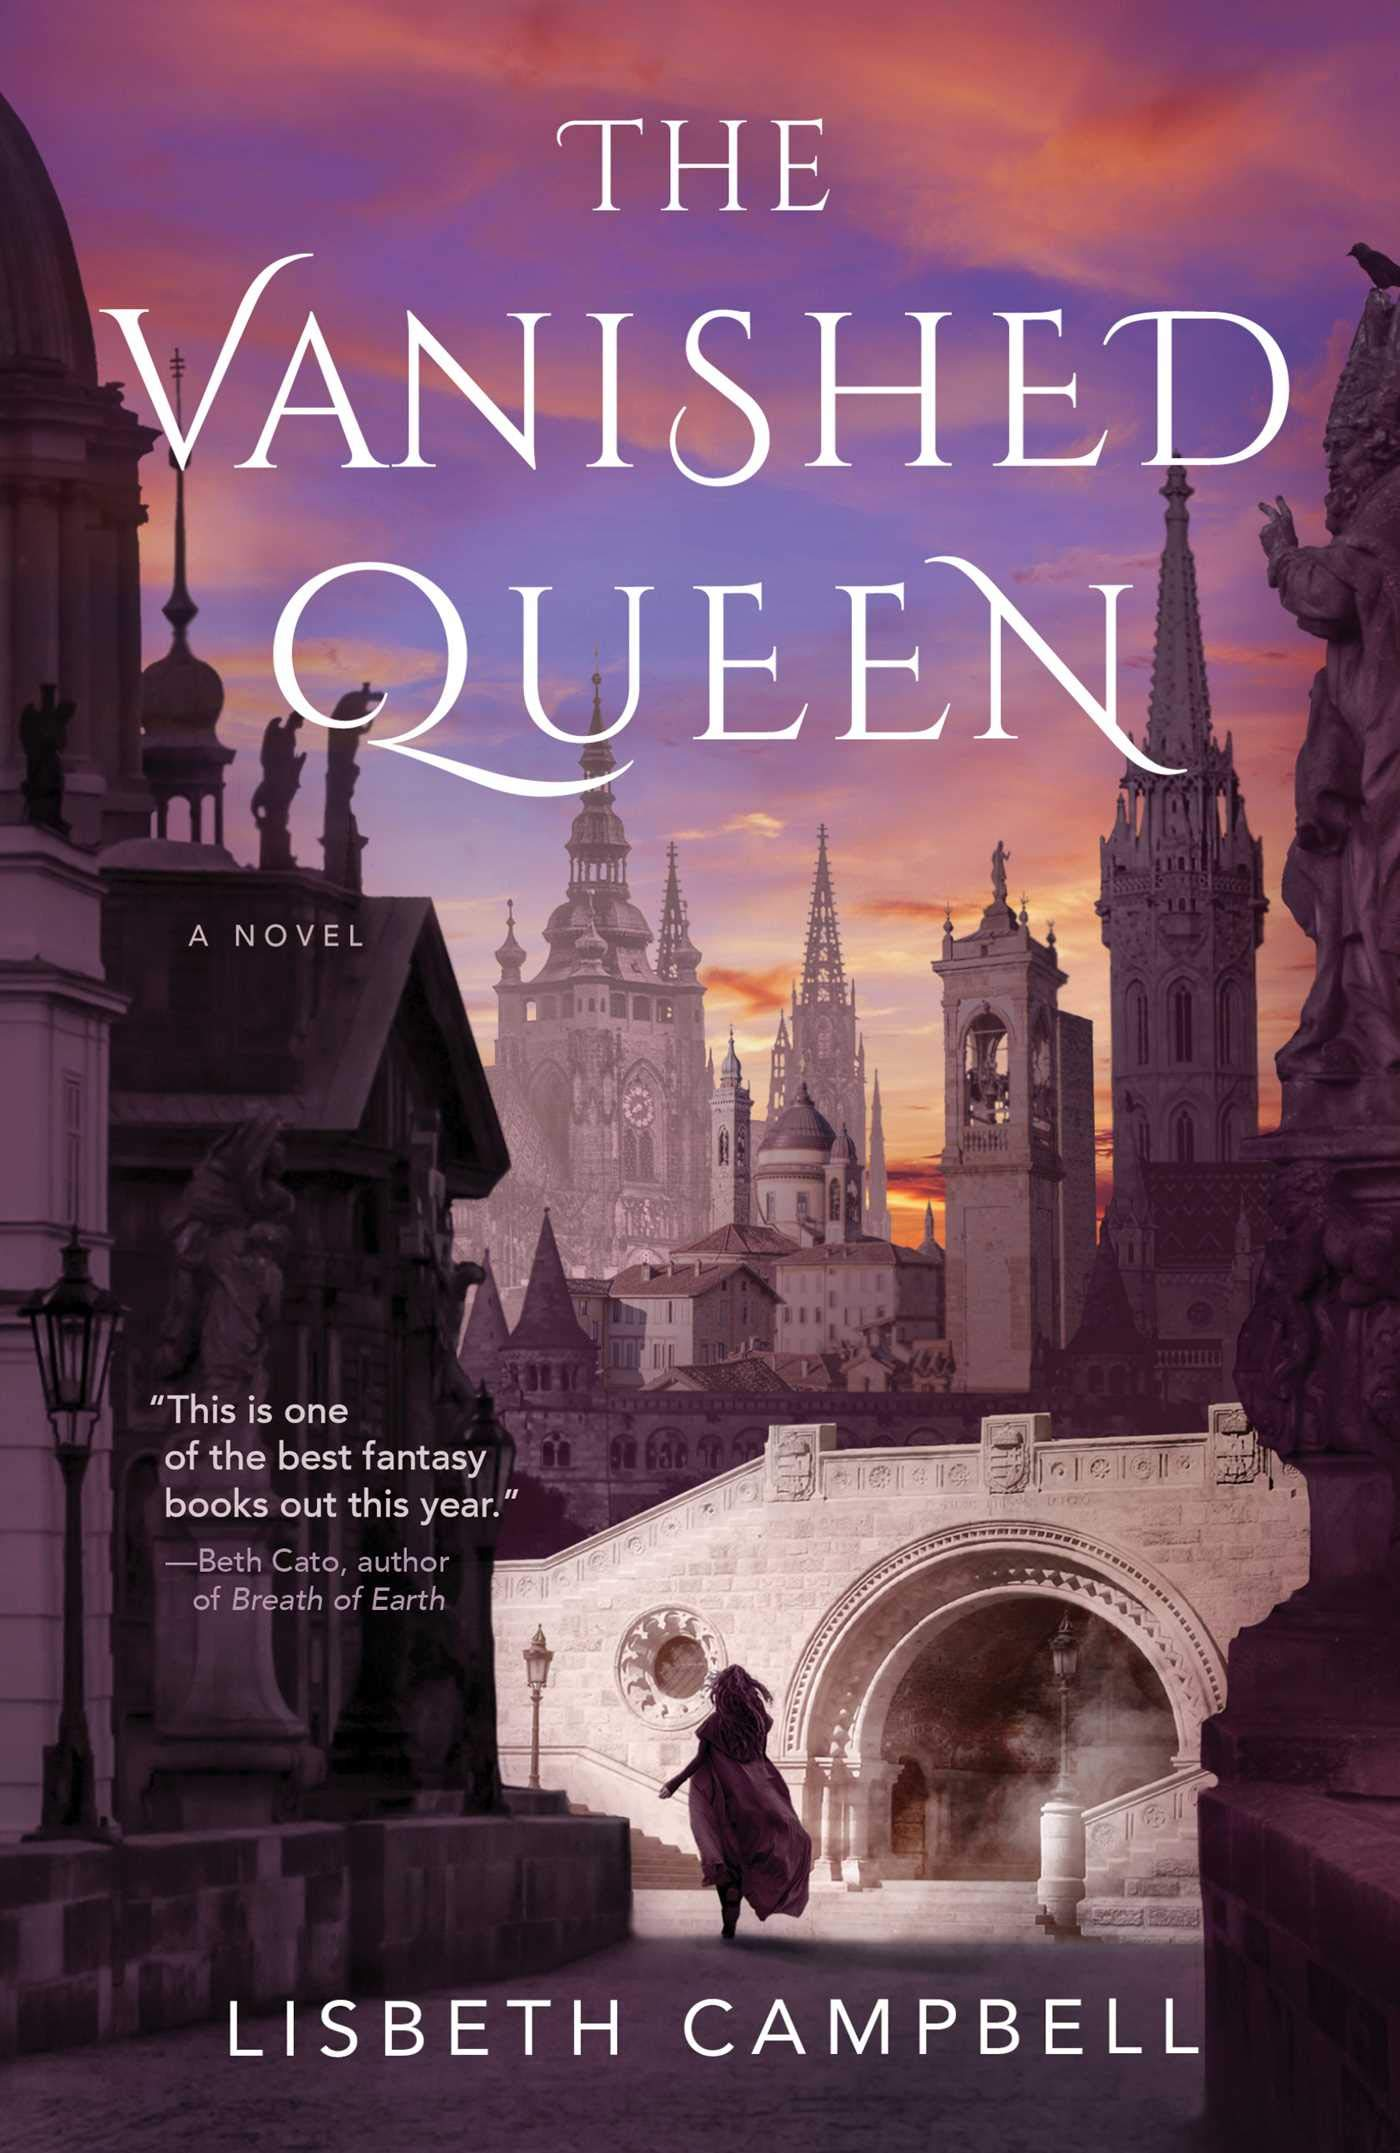 Lisbeth Campbell: Five Things I Learned Writing The Vanished Queen